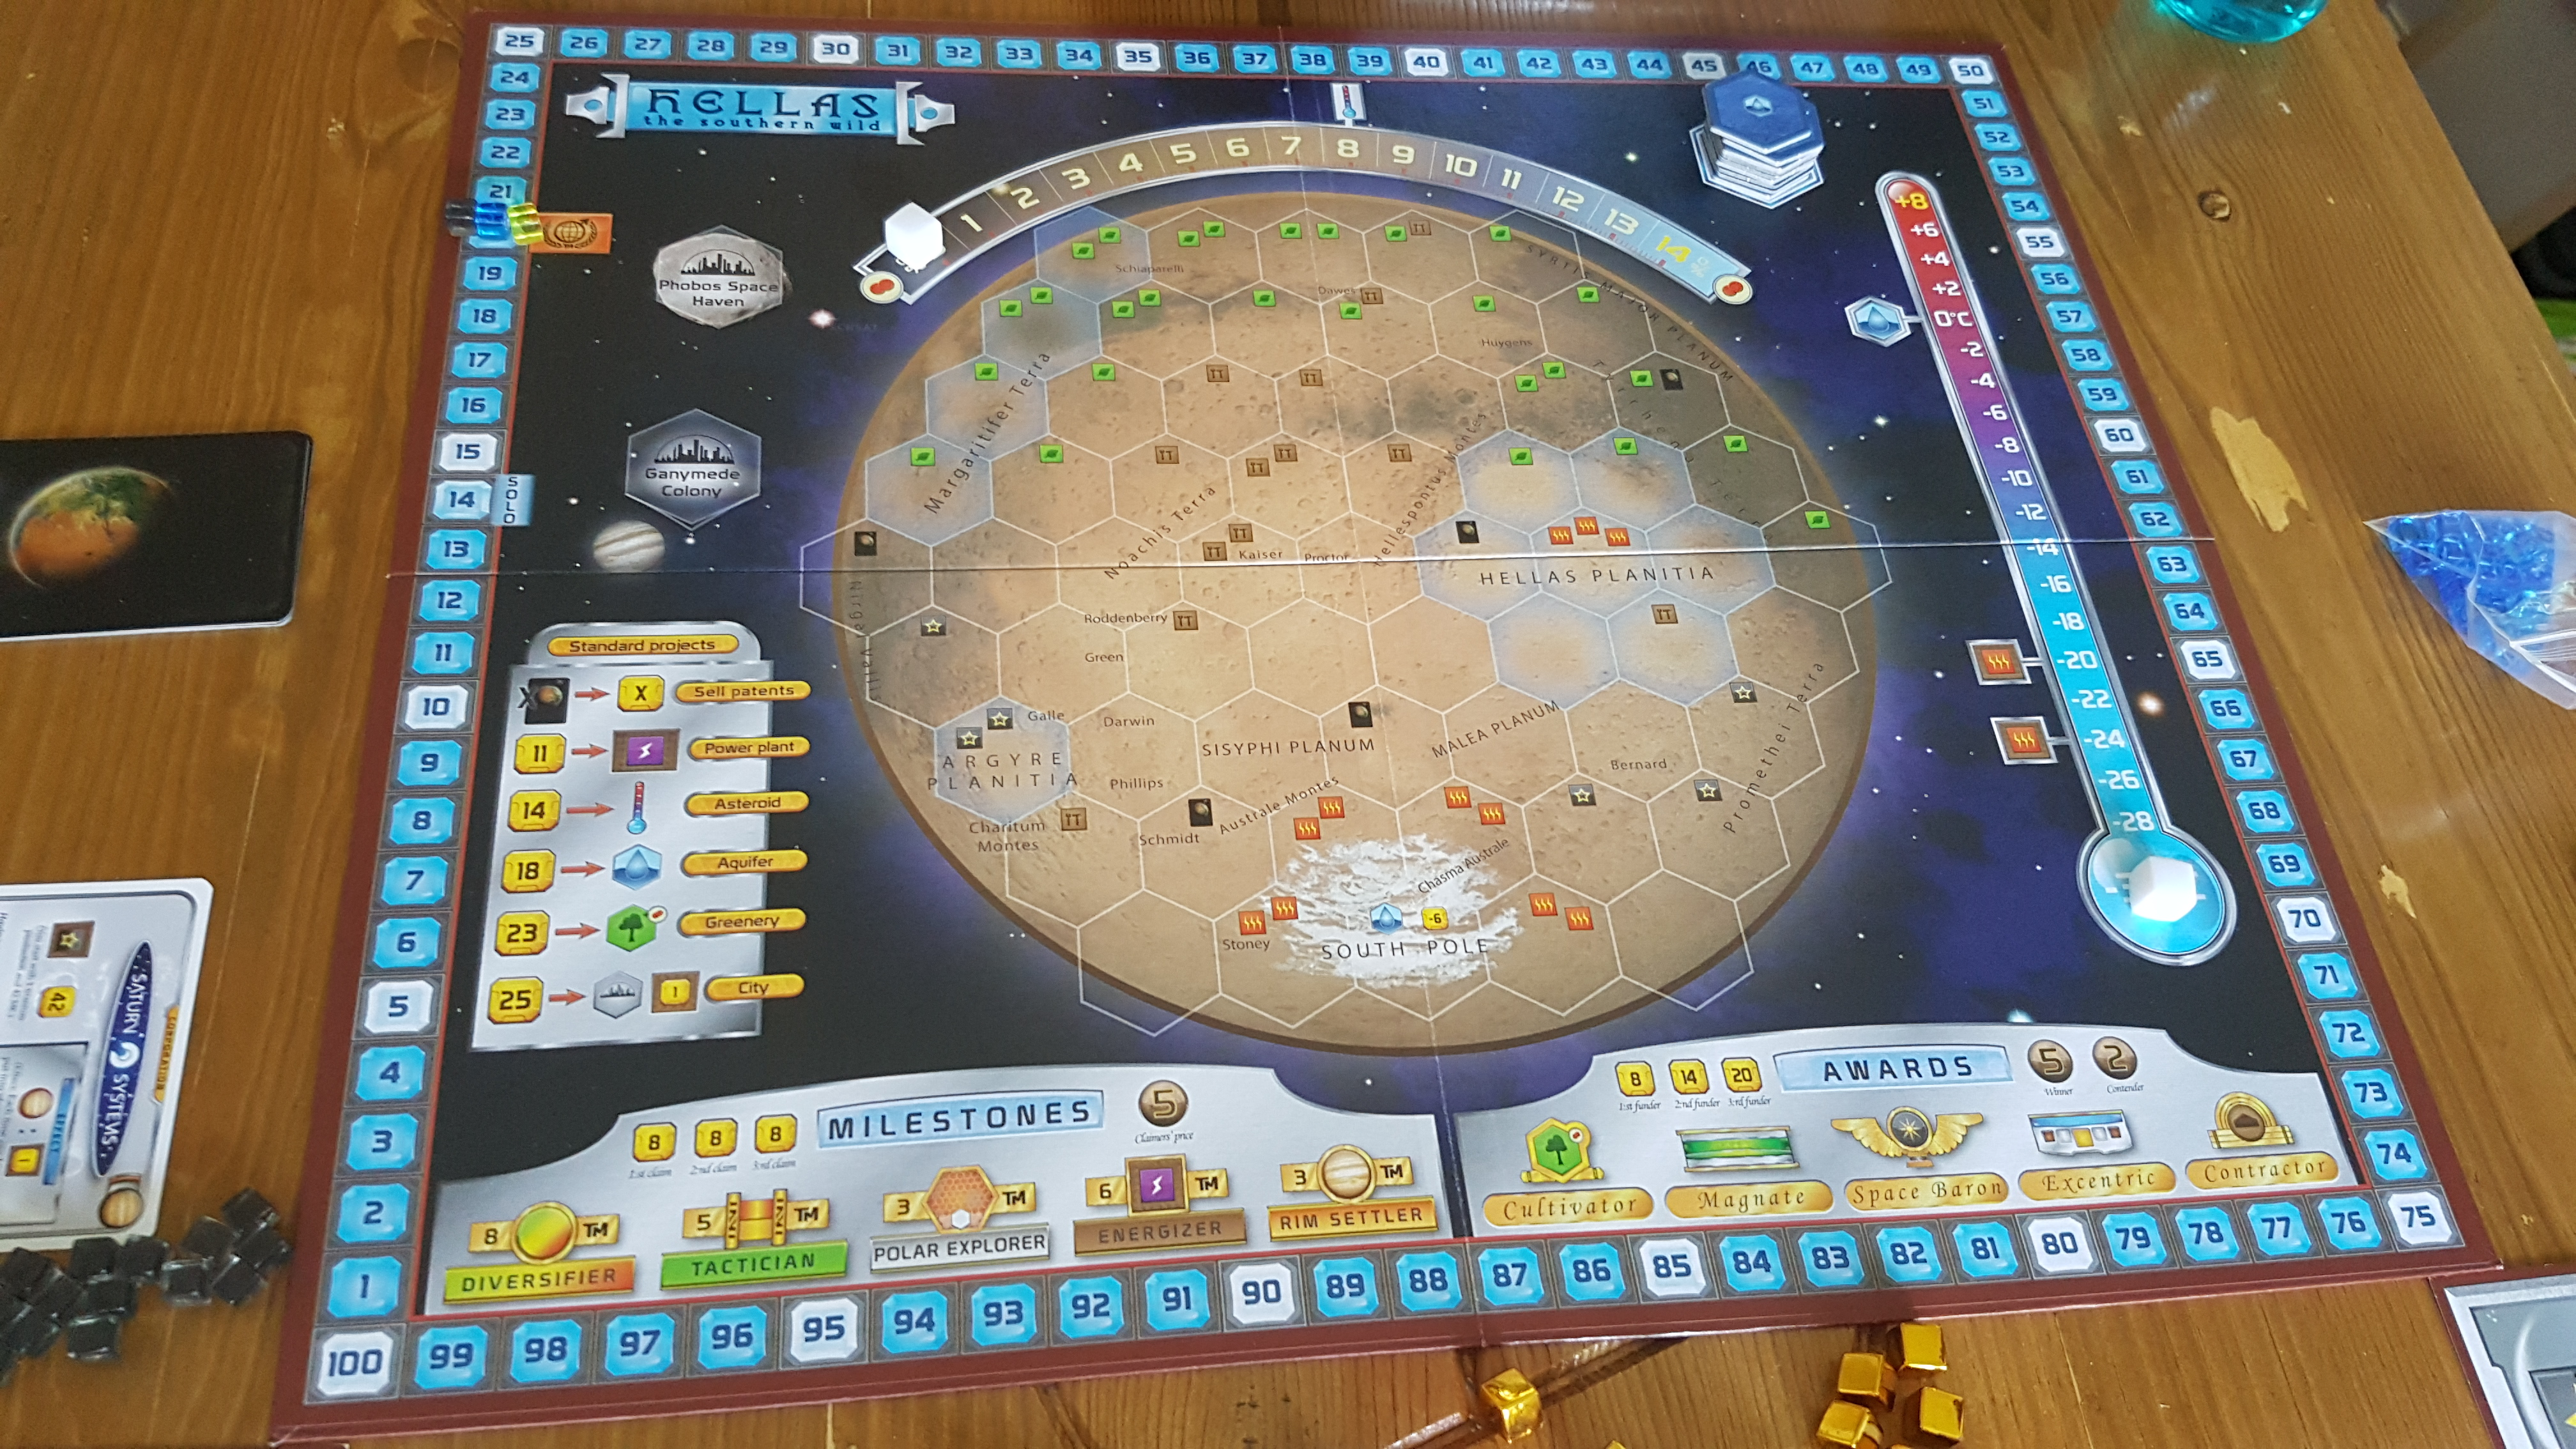 Terraforming Mars: as & Elysium Review - More Martian ... on borealis basin on mars, detailed map of mars, map of a trip to mars, political map of mars, map of mars space, map of mars land, modern map of mars, map of mars with water, terraforming of mars,